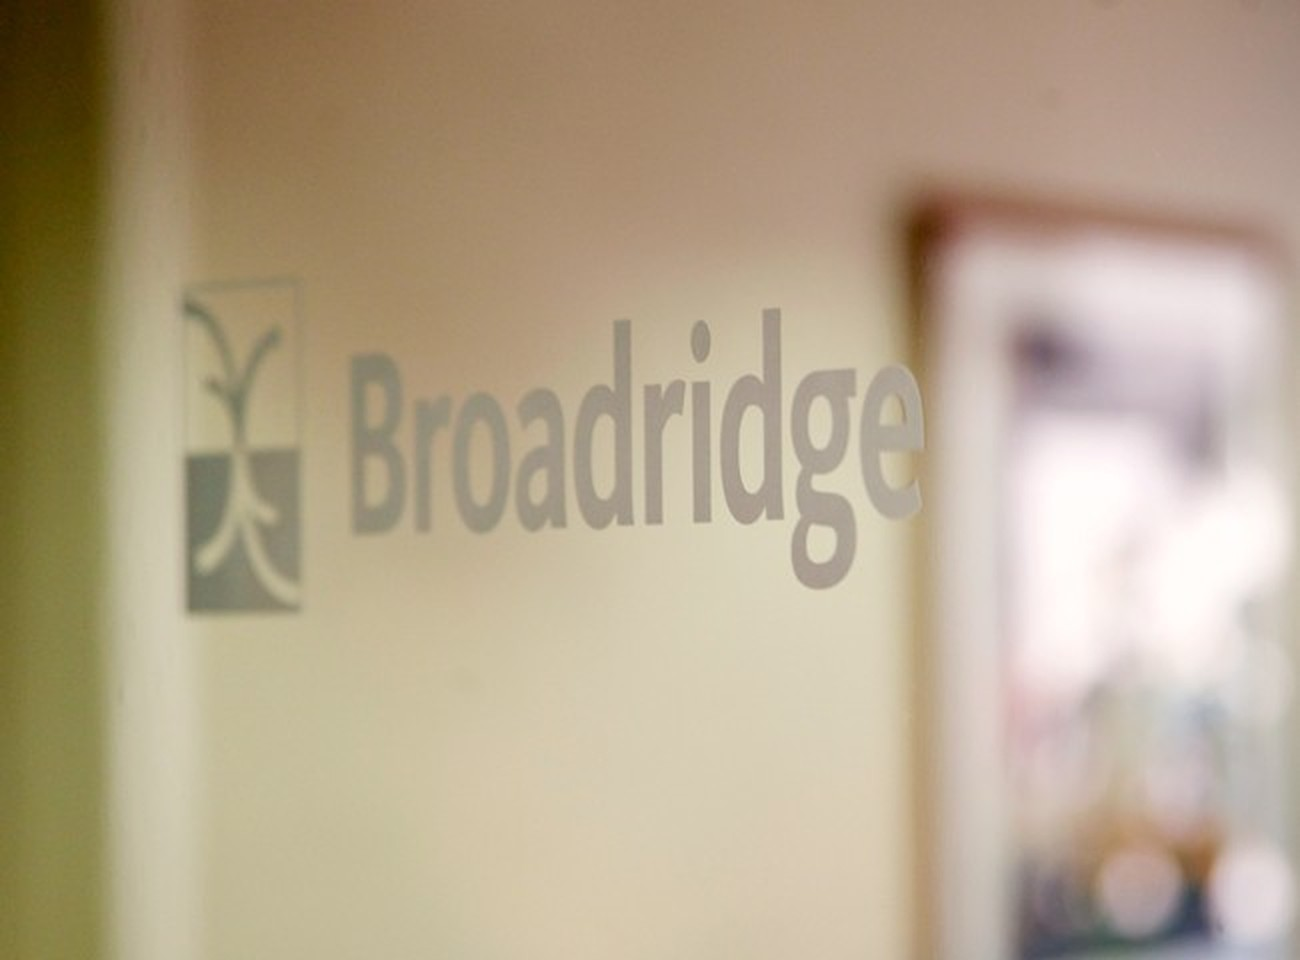 Broadridge Careers